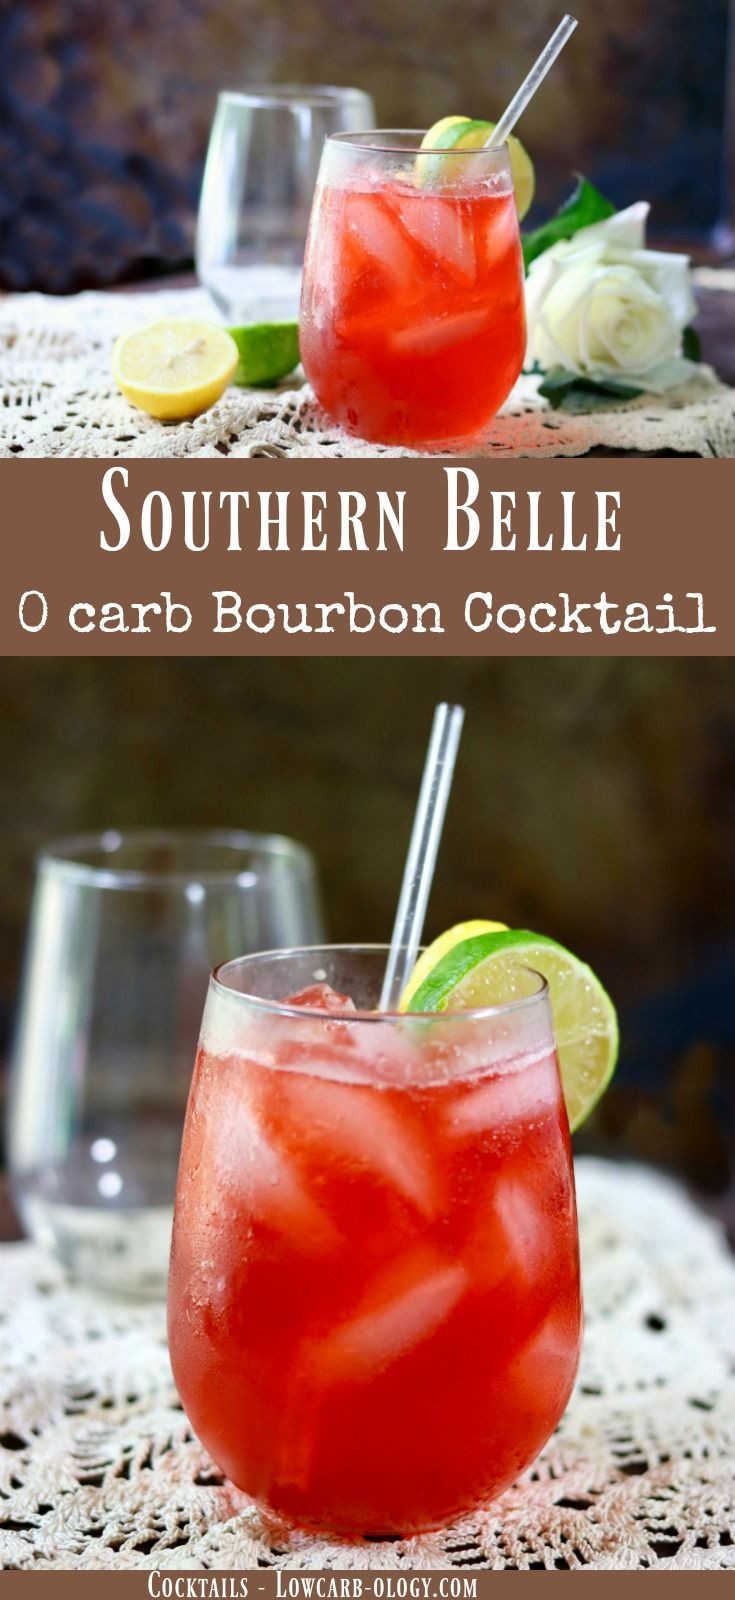 Bourbon Drinks For Summer  Summer Bourbon Cocktail The Southern Belle lowcarb ology